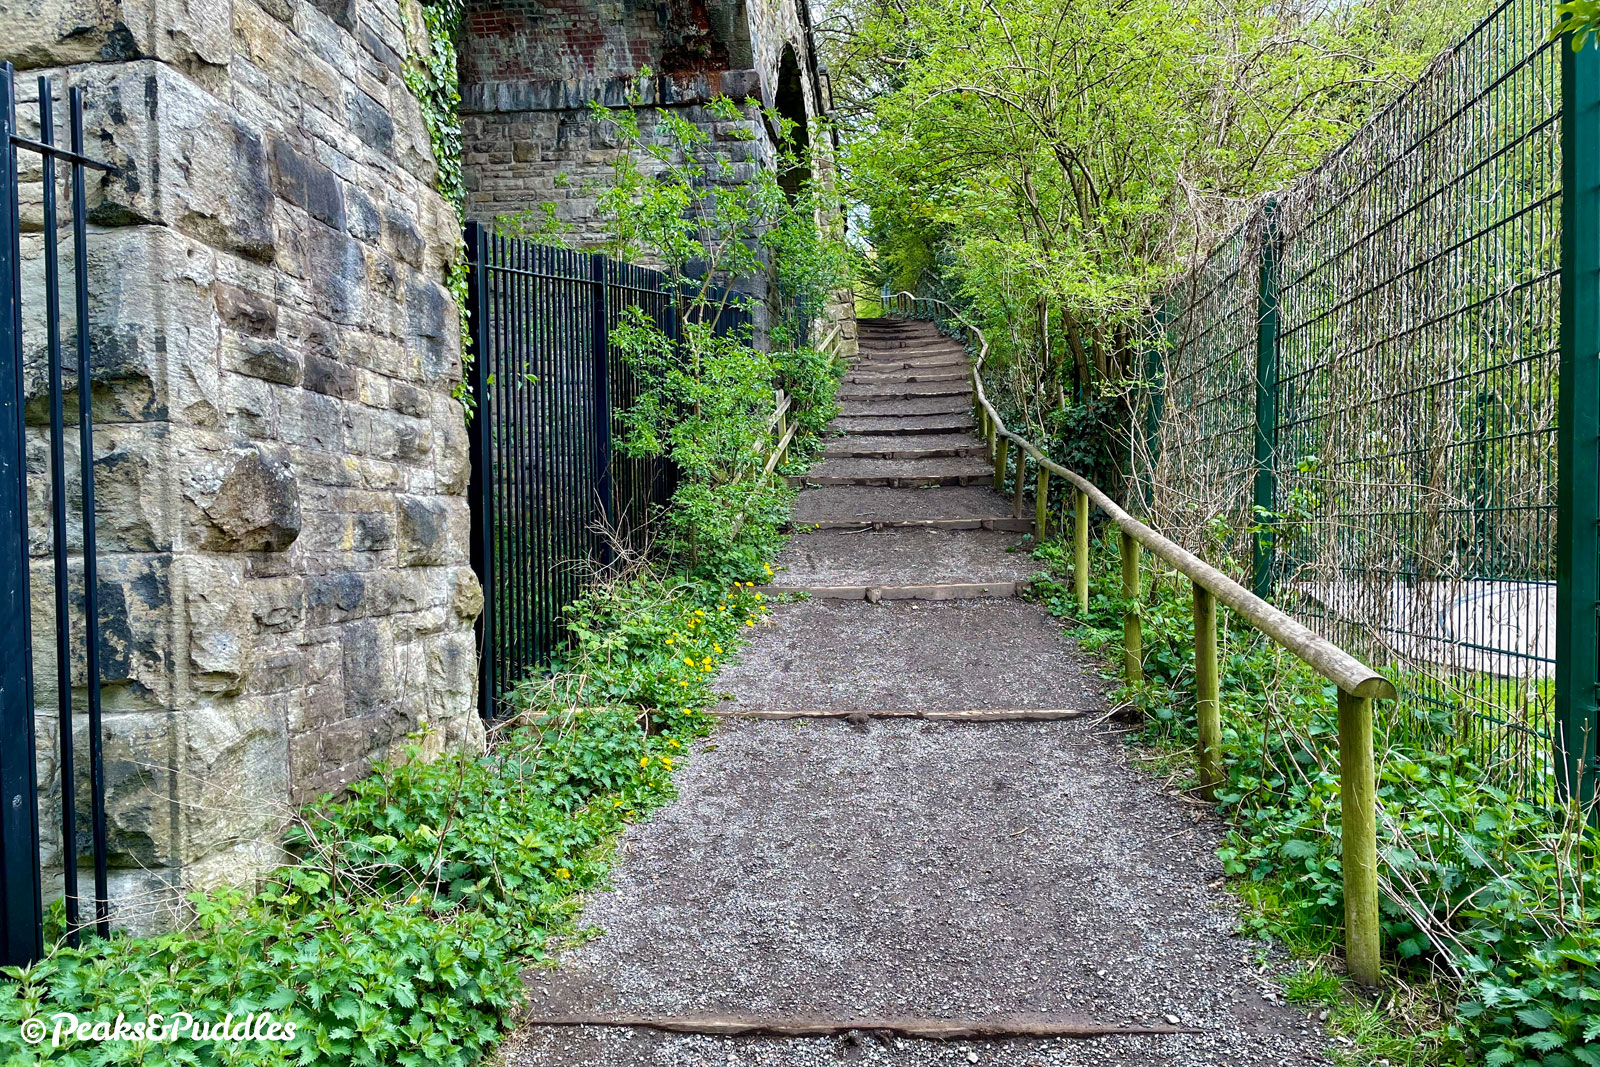 If thinking of joining at Bollington, note that the only access from the main car park is via this long set of steps, with not even a wheeling ramp to help push your bike up.